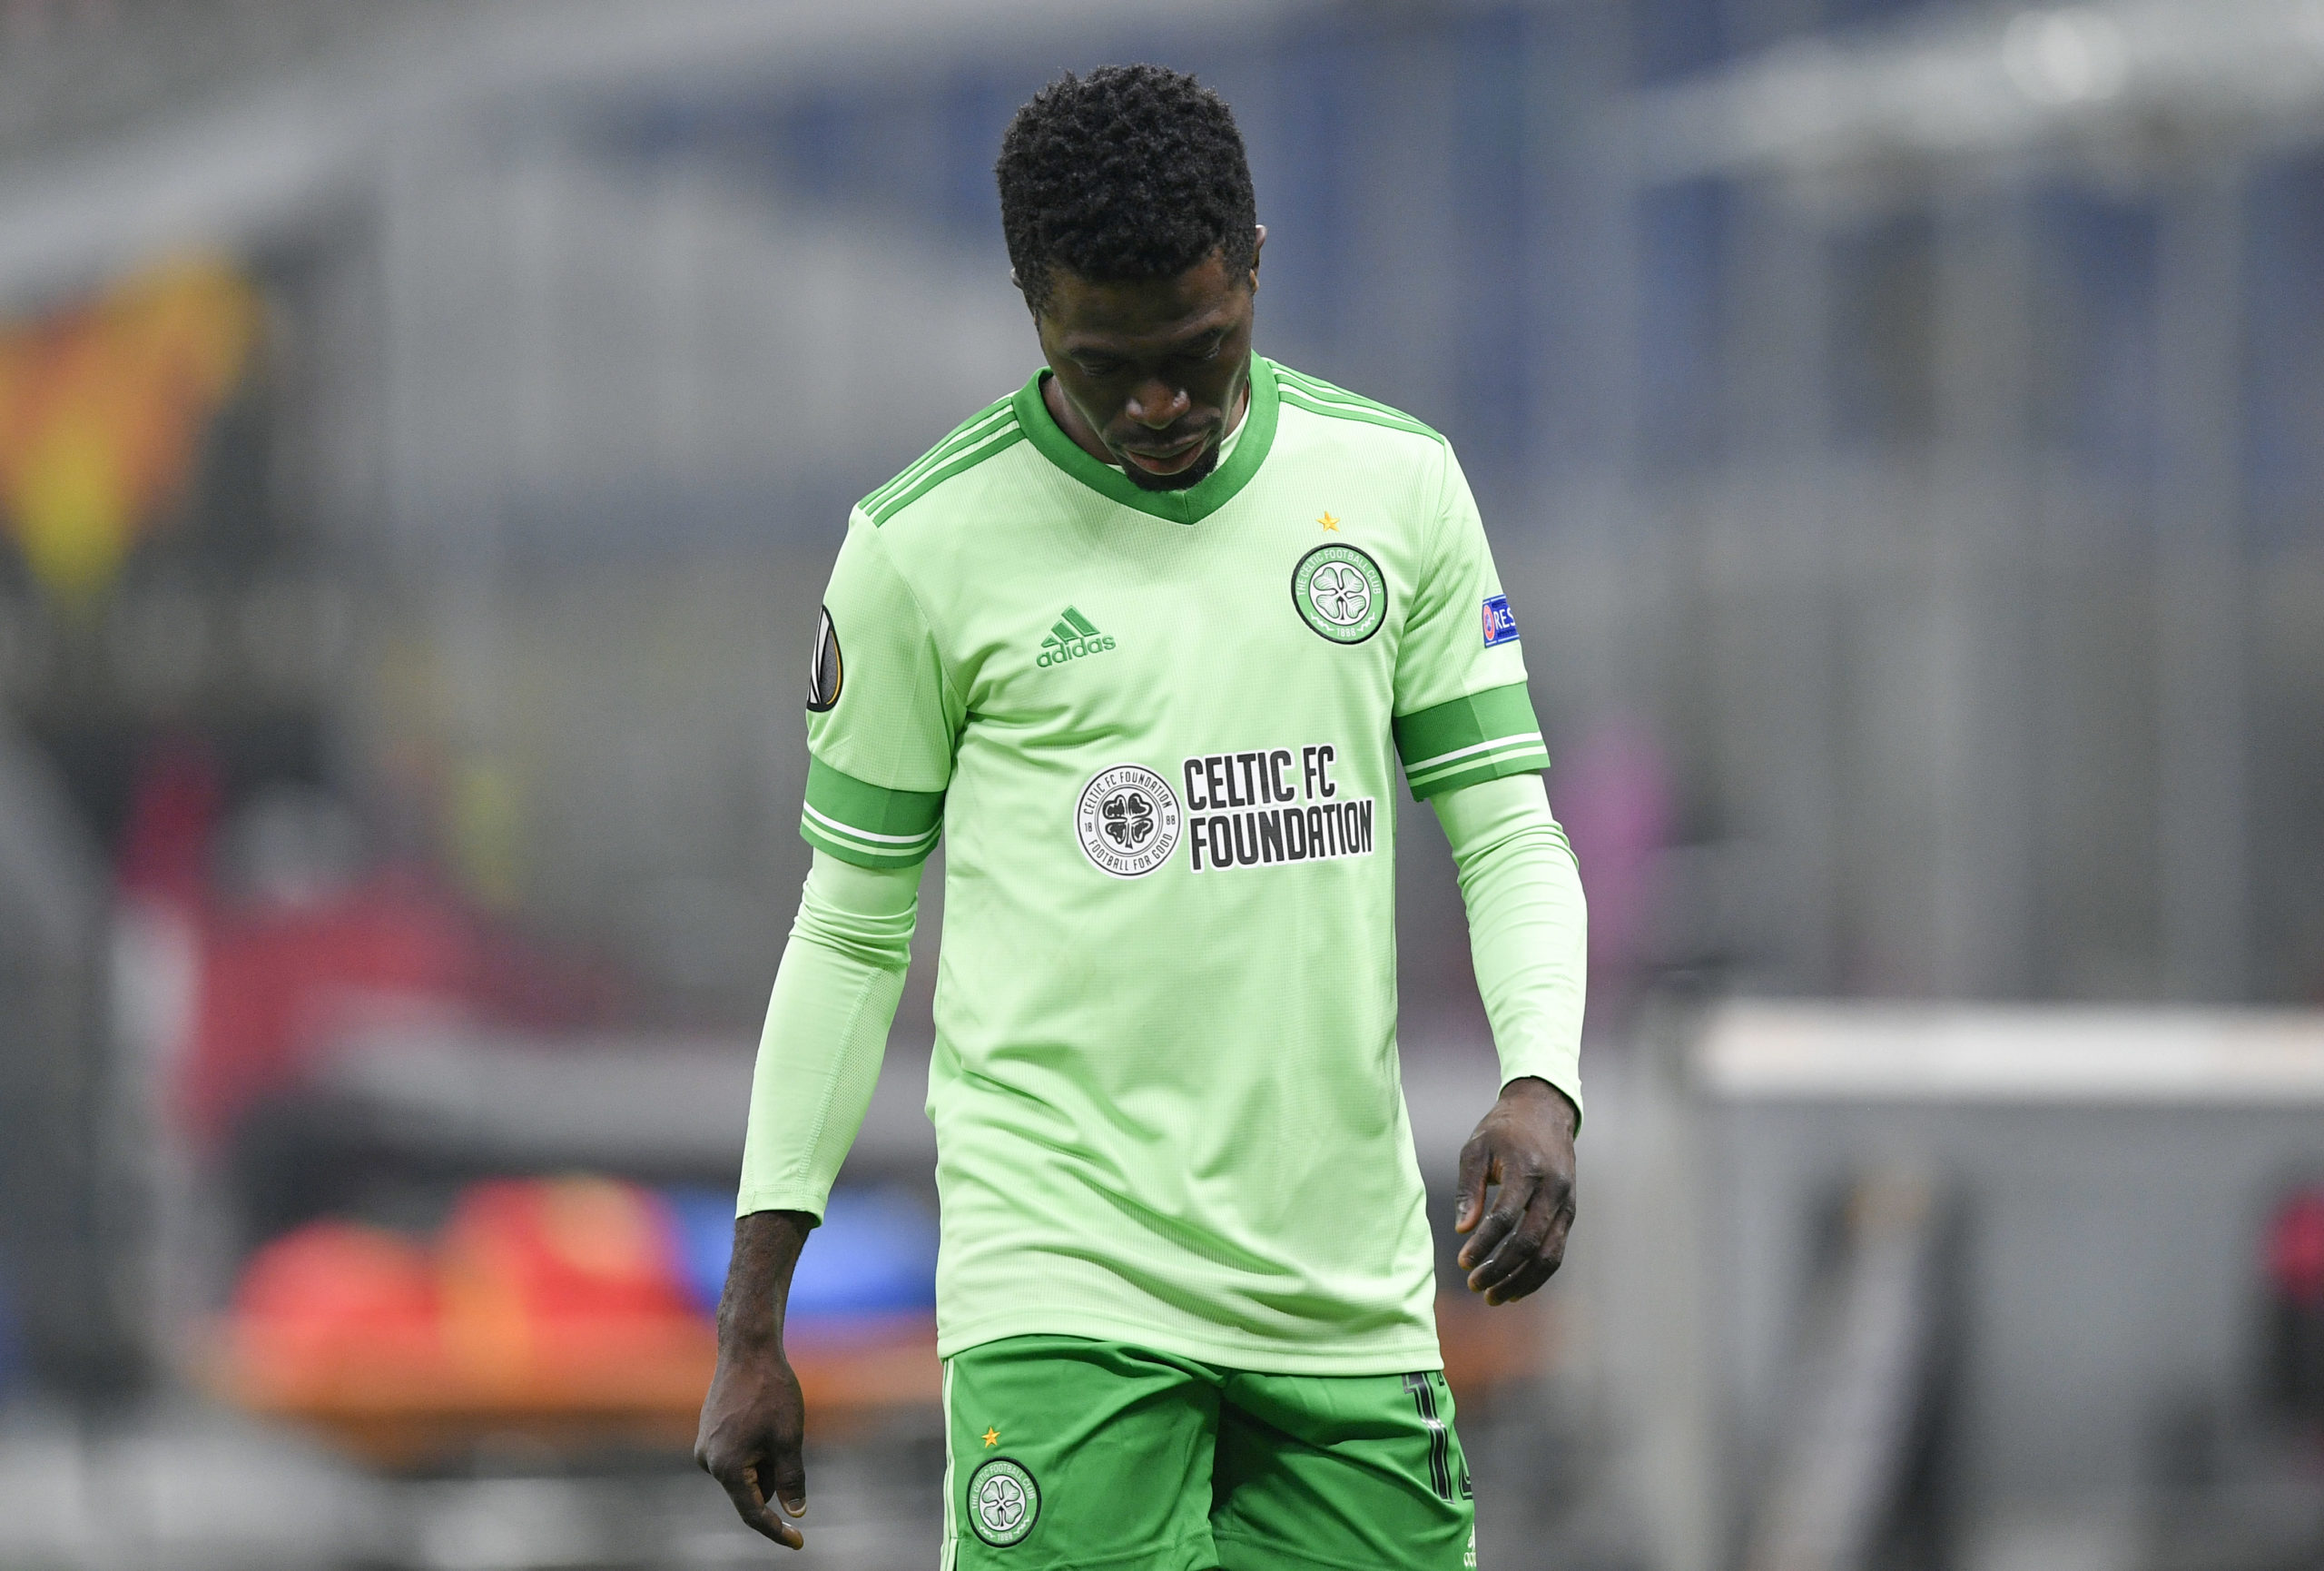 It's time for Celtic boss to unleash rarely seen signing; Sunday is the perfect chance